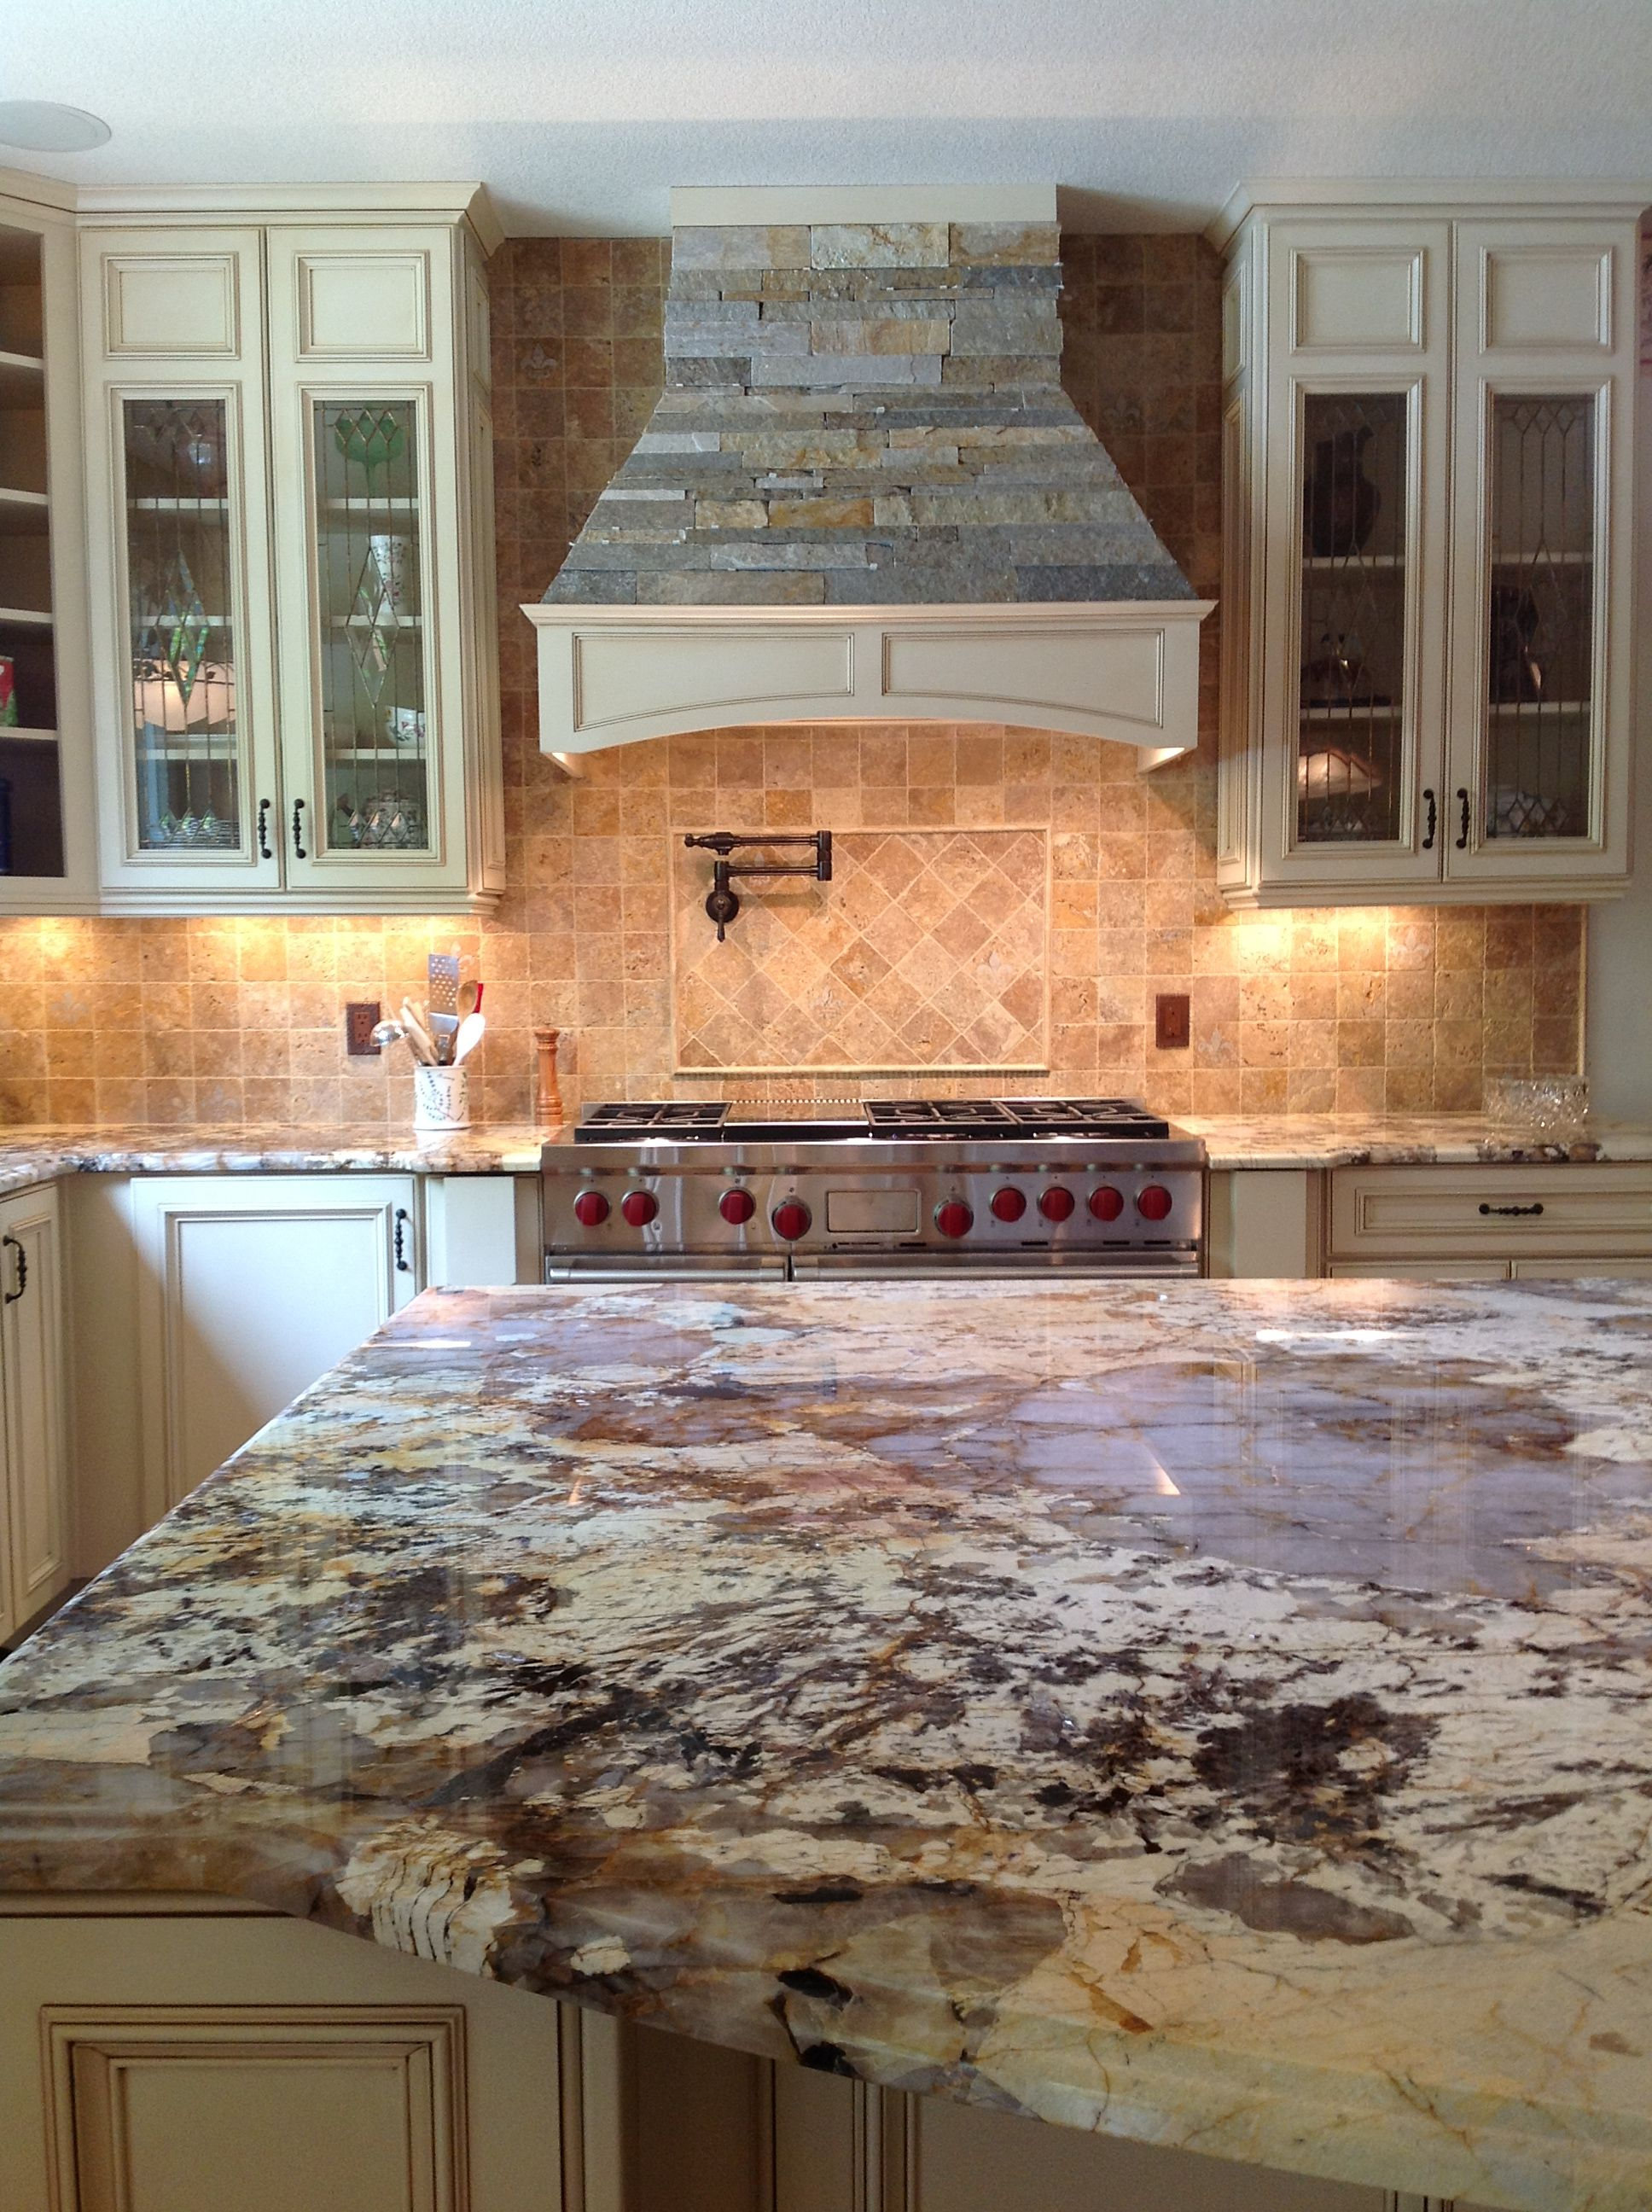 Pioneer Cabinets With Granite Countertops · Job PicturesGranite Countertops Bathroom DesignsCabinets Part 82